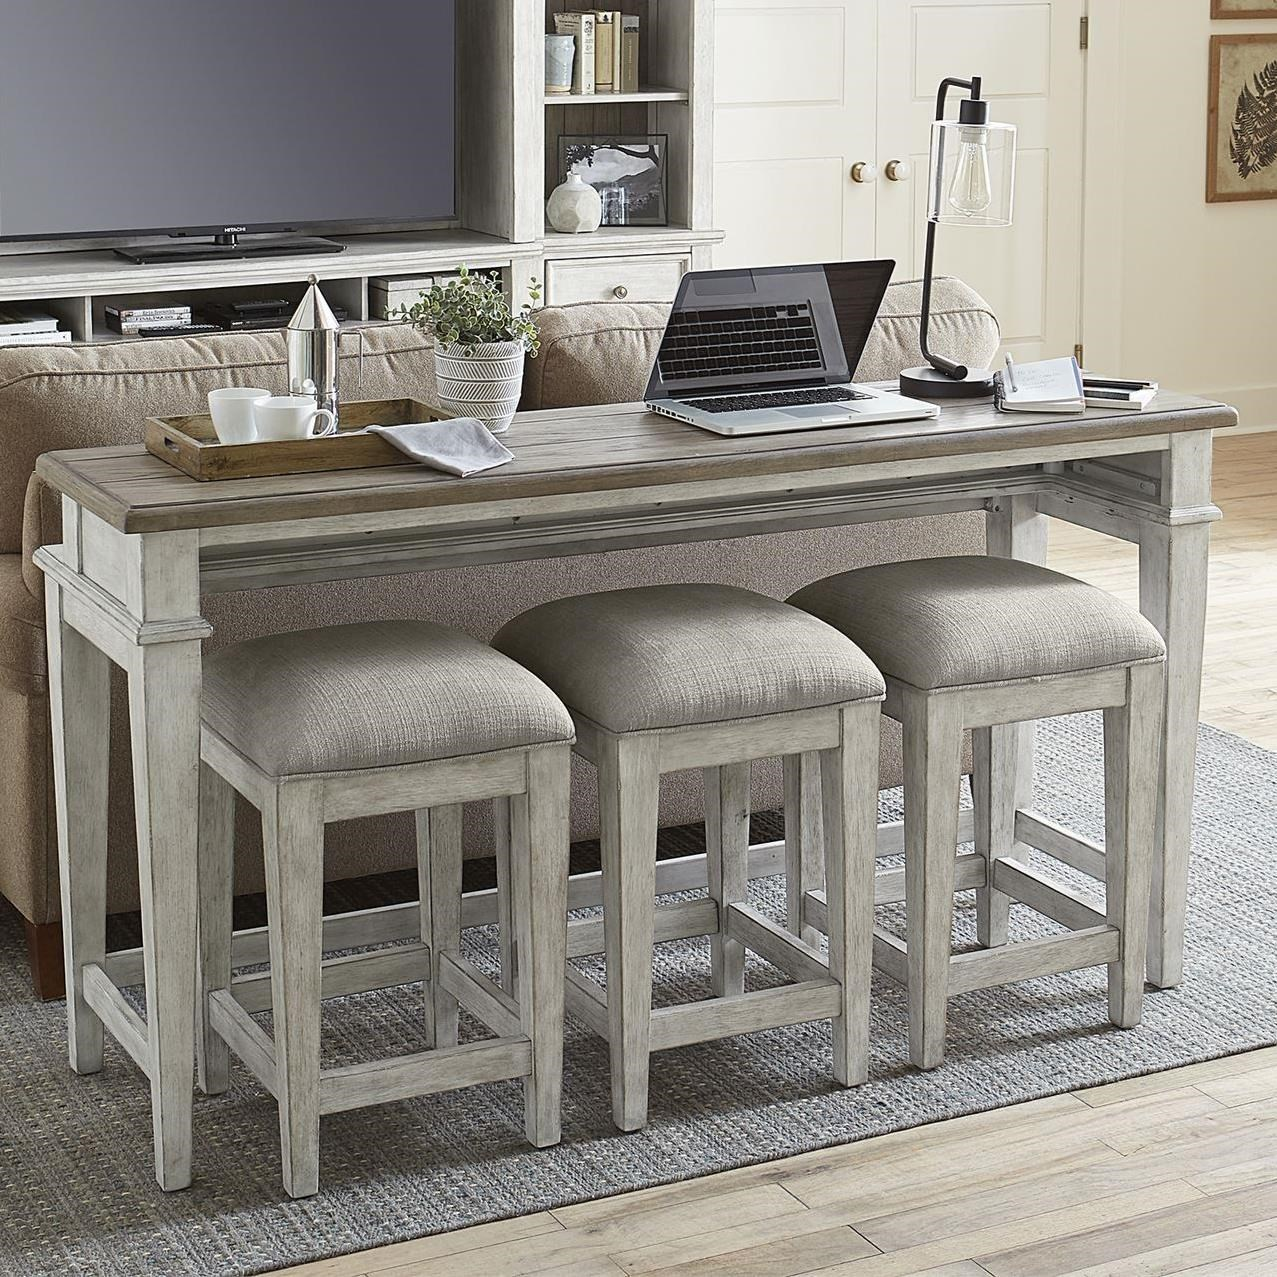 Heartland 4-Piece Console Bar Table Set by Liberty Furniture at Johnny Janosik